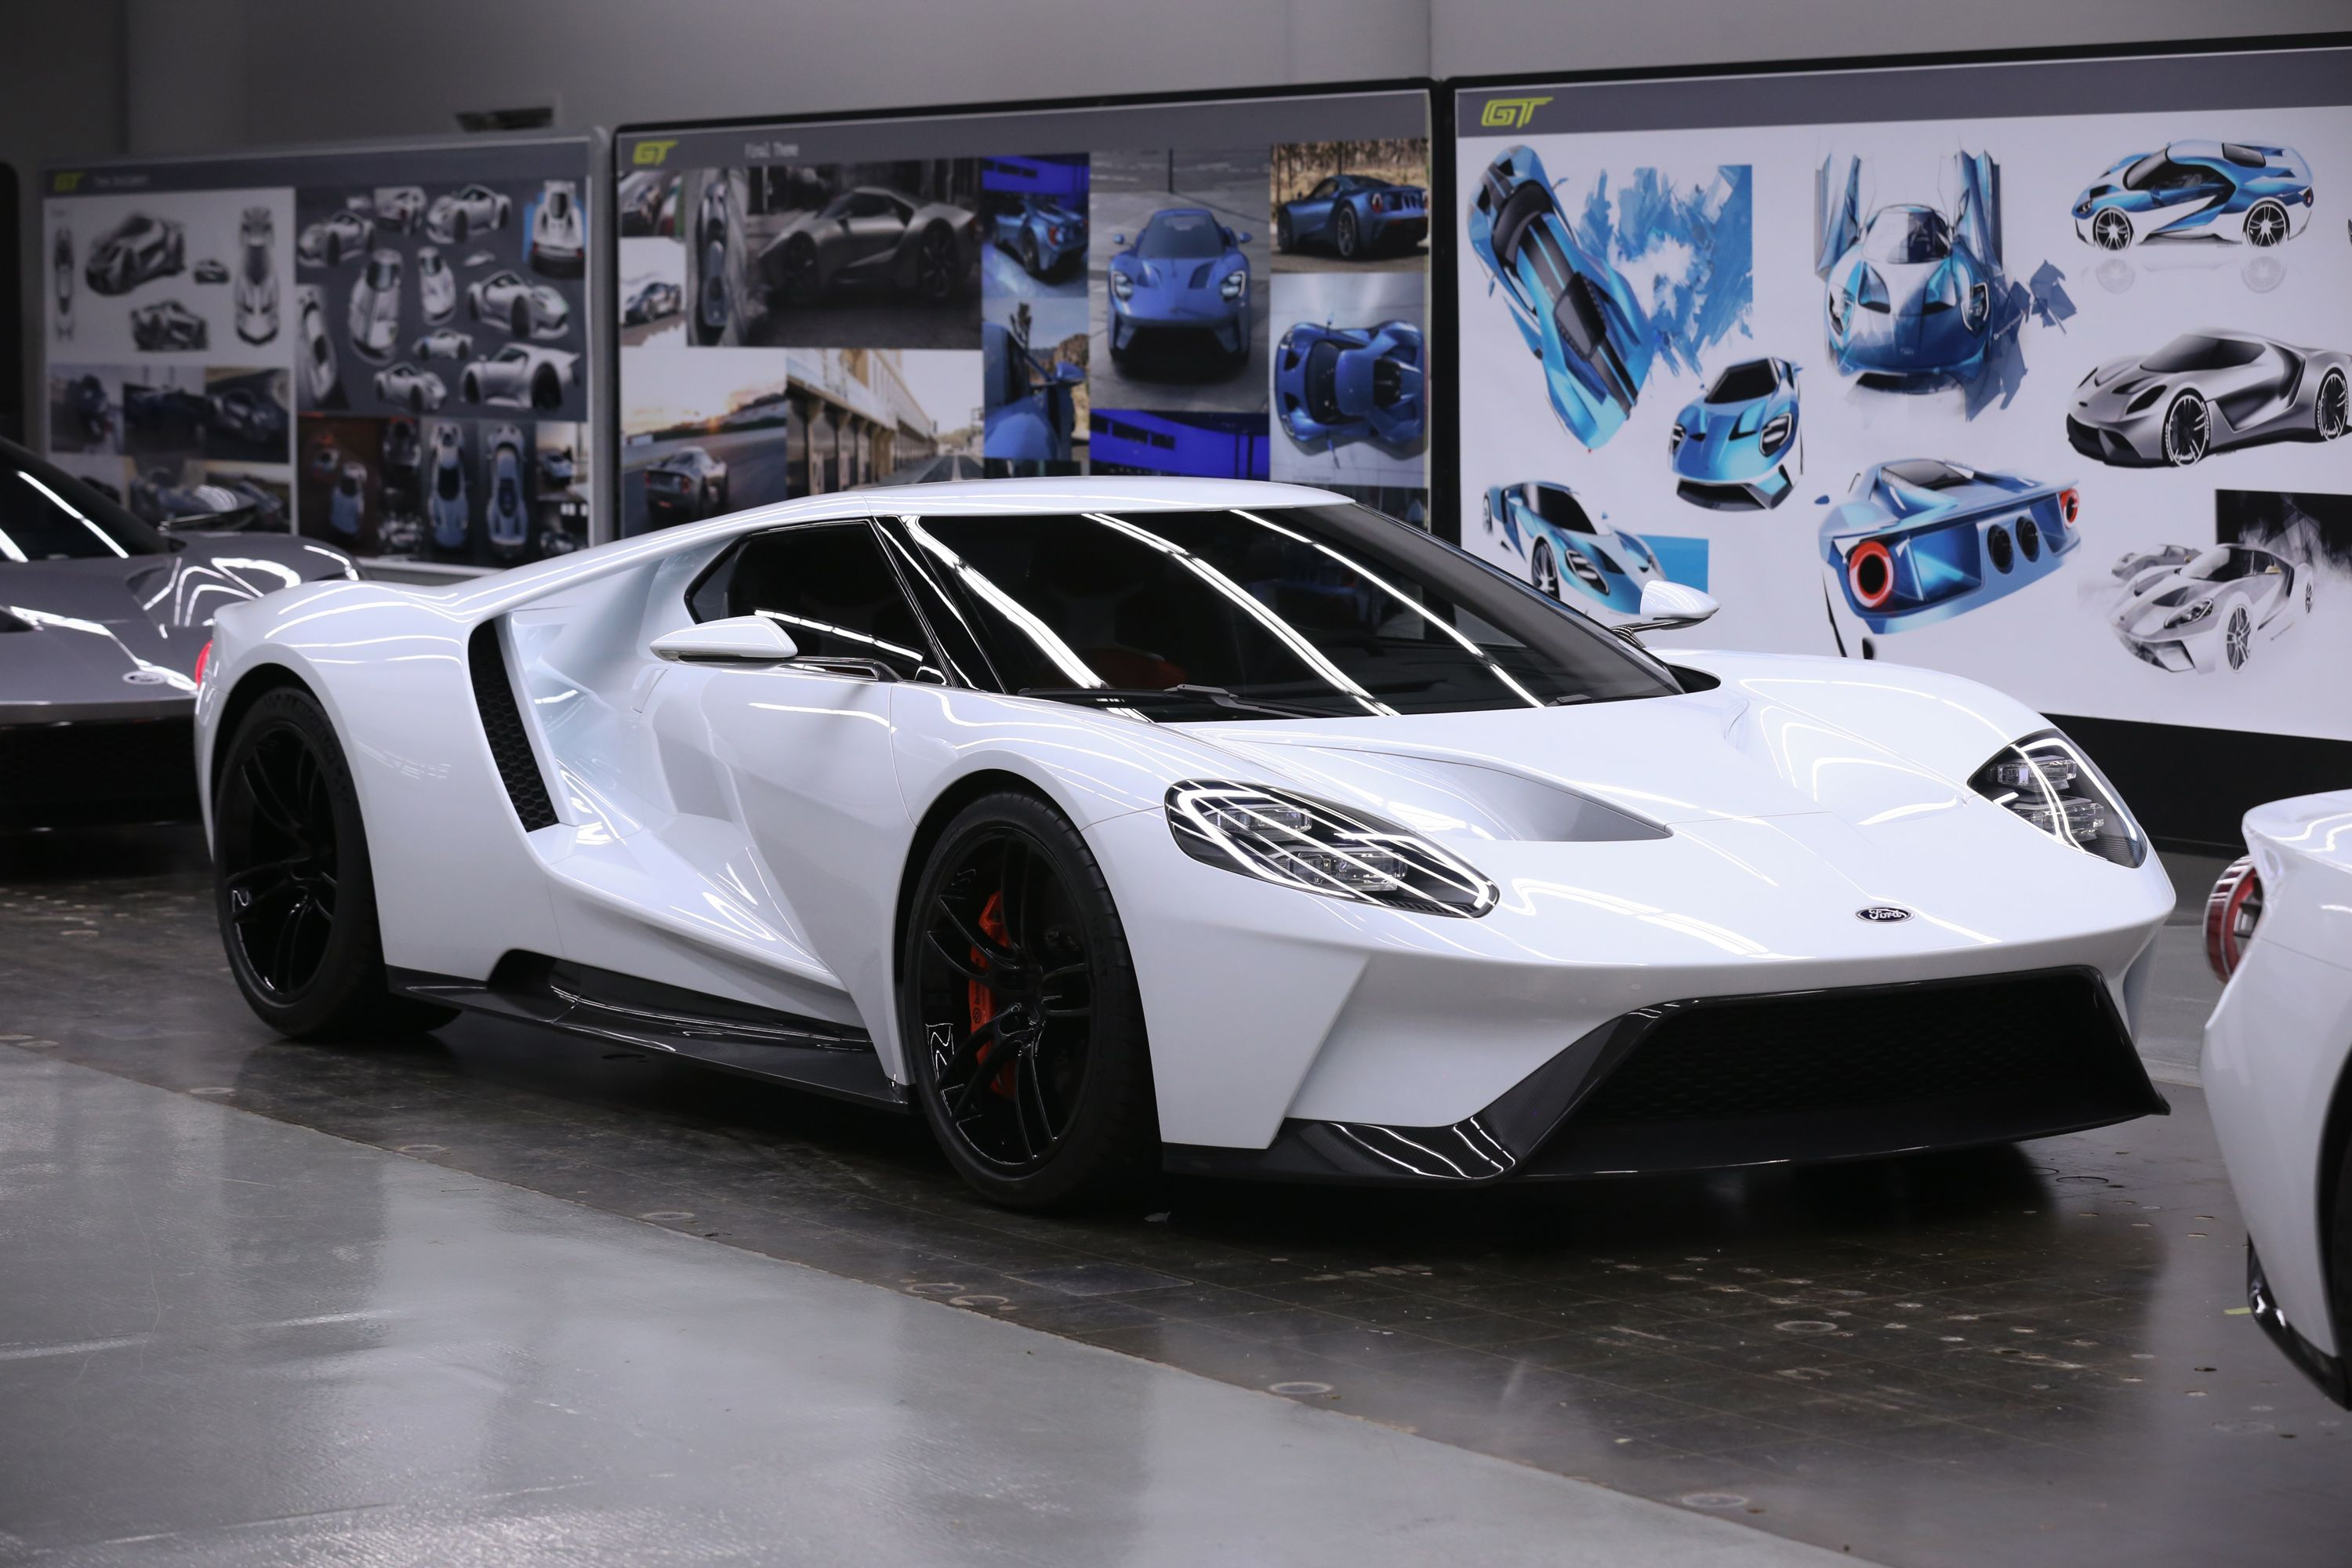 How The New Ford Gt Came To Be The Inside Story Ford Gt Sports